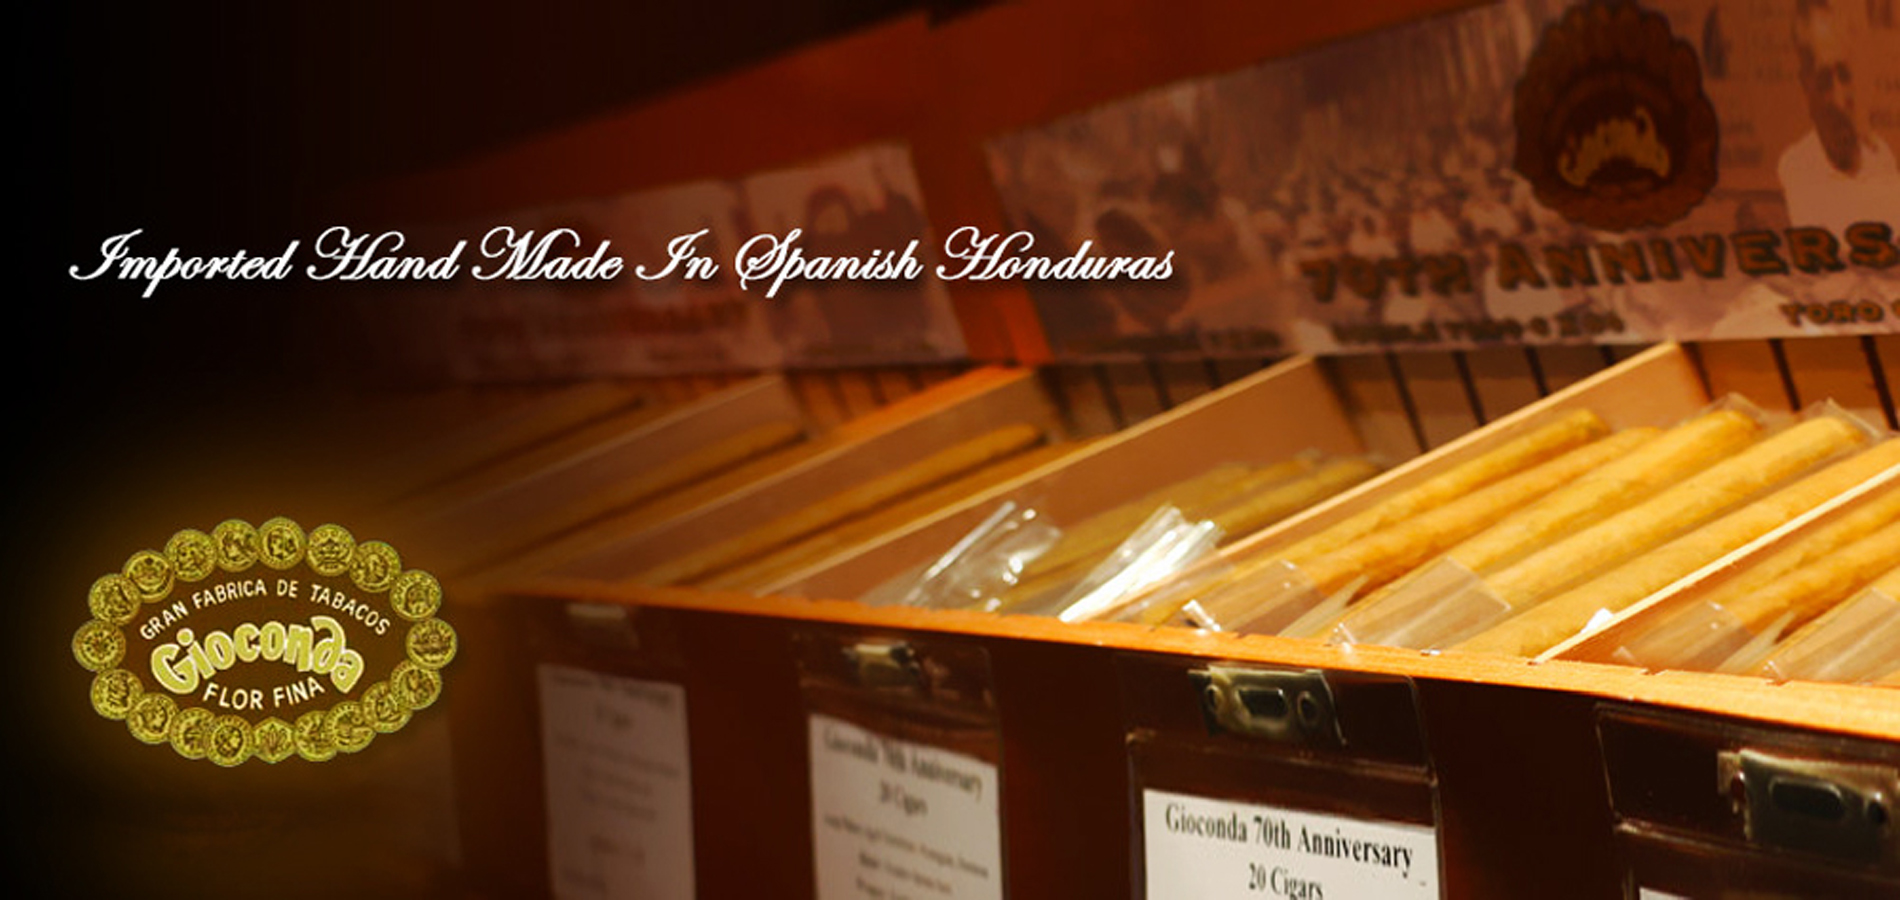 Gioconda-Cigars-Tampa-Florida-Area